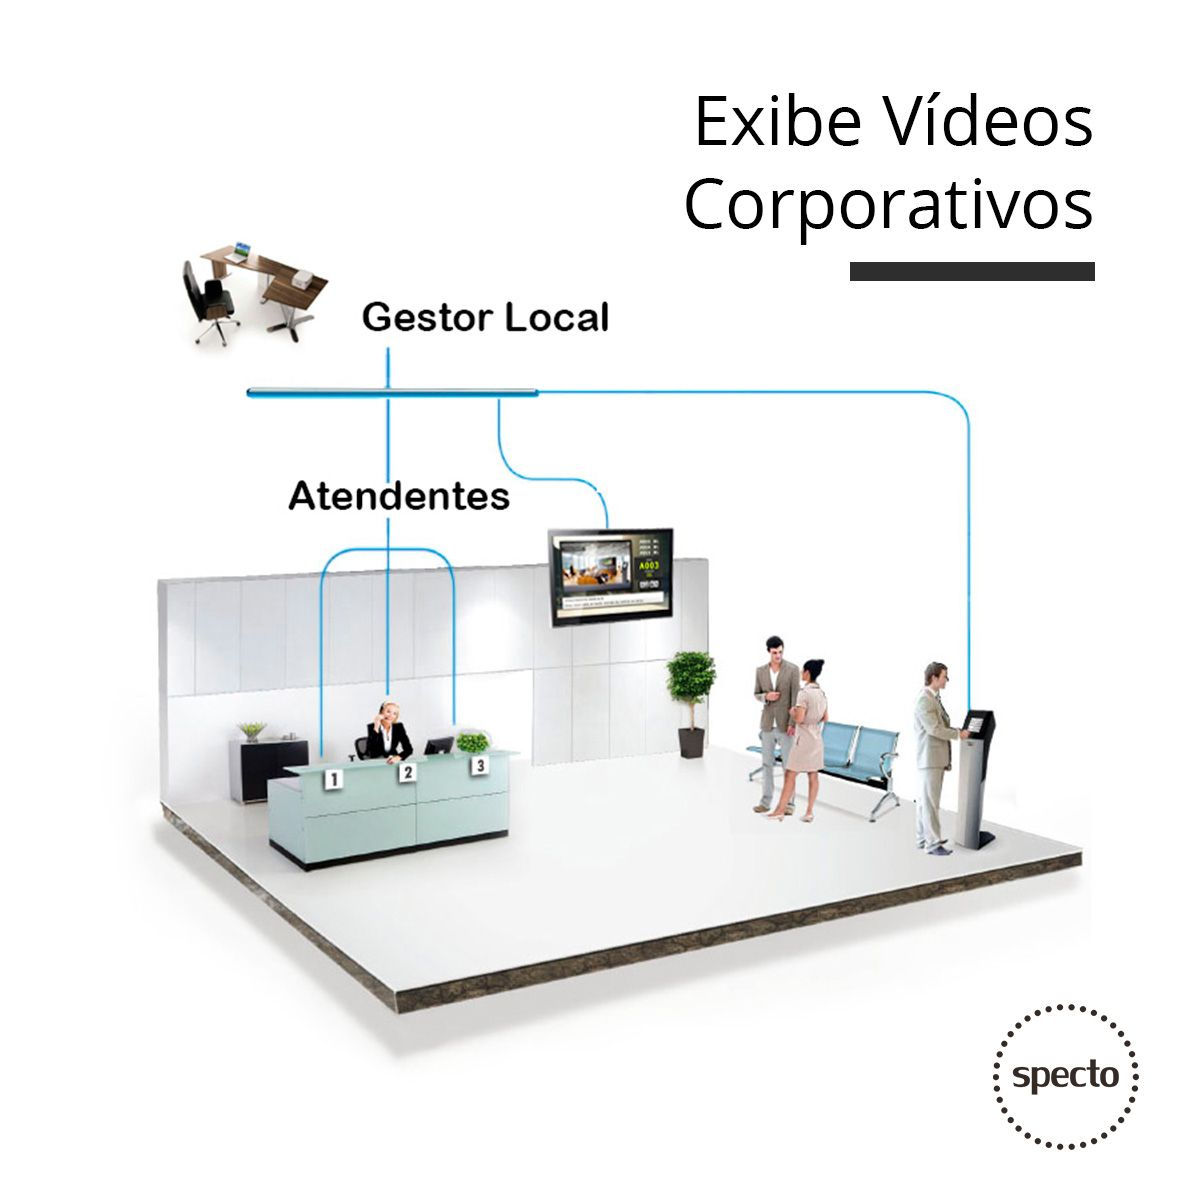 QUALPROX® UNITY Painel TV Corporativa  -  Specto Tecnologia